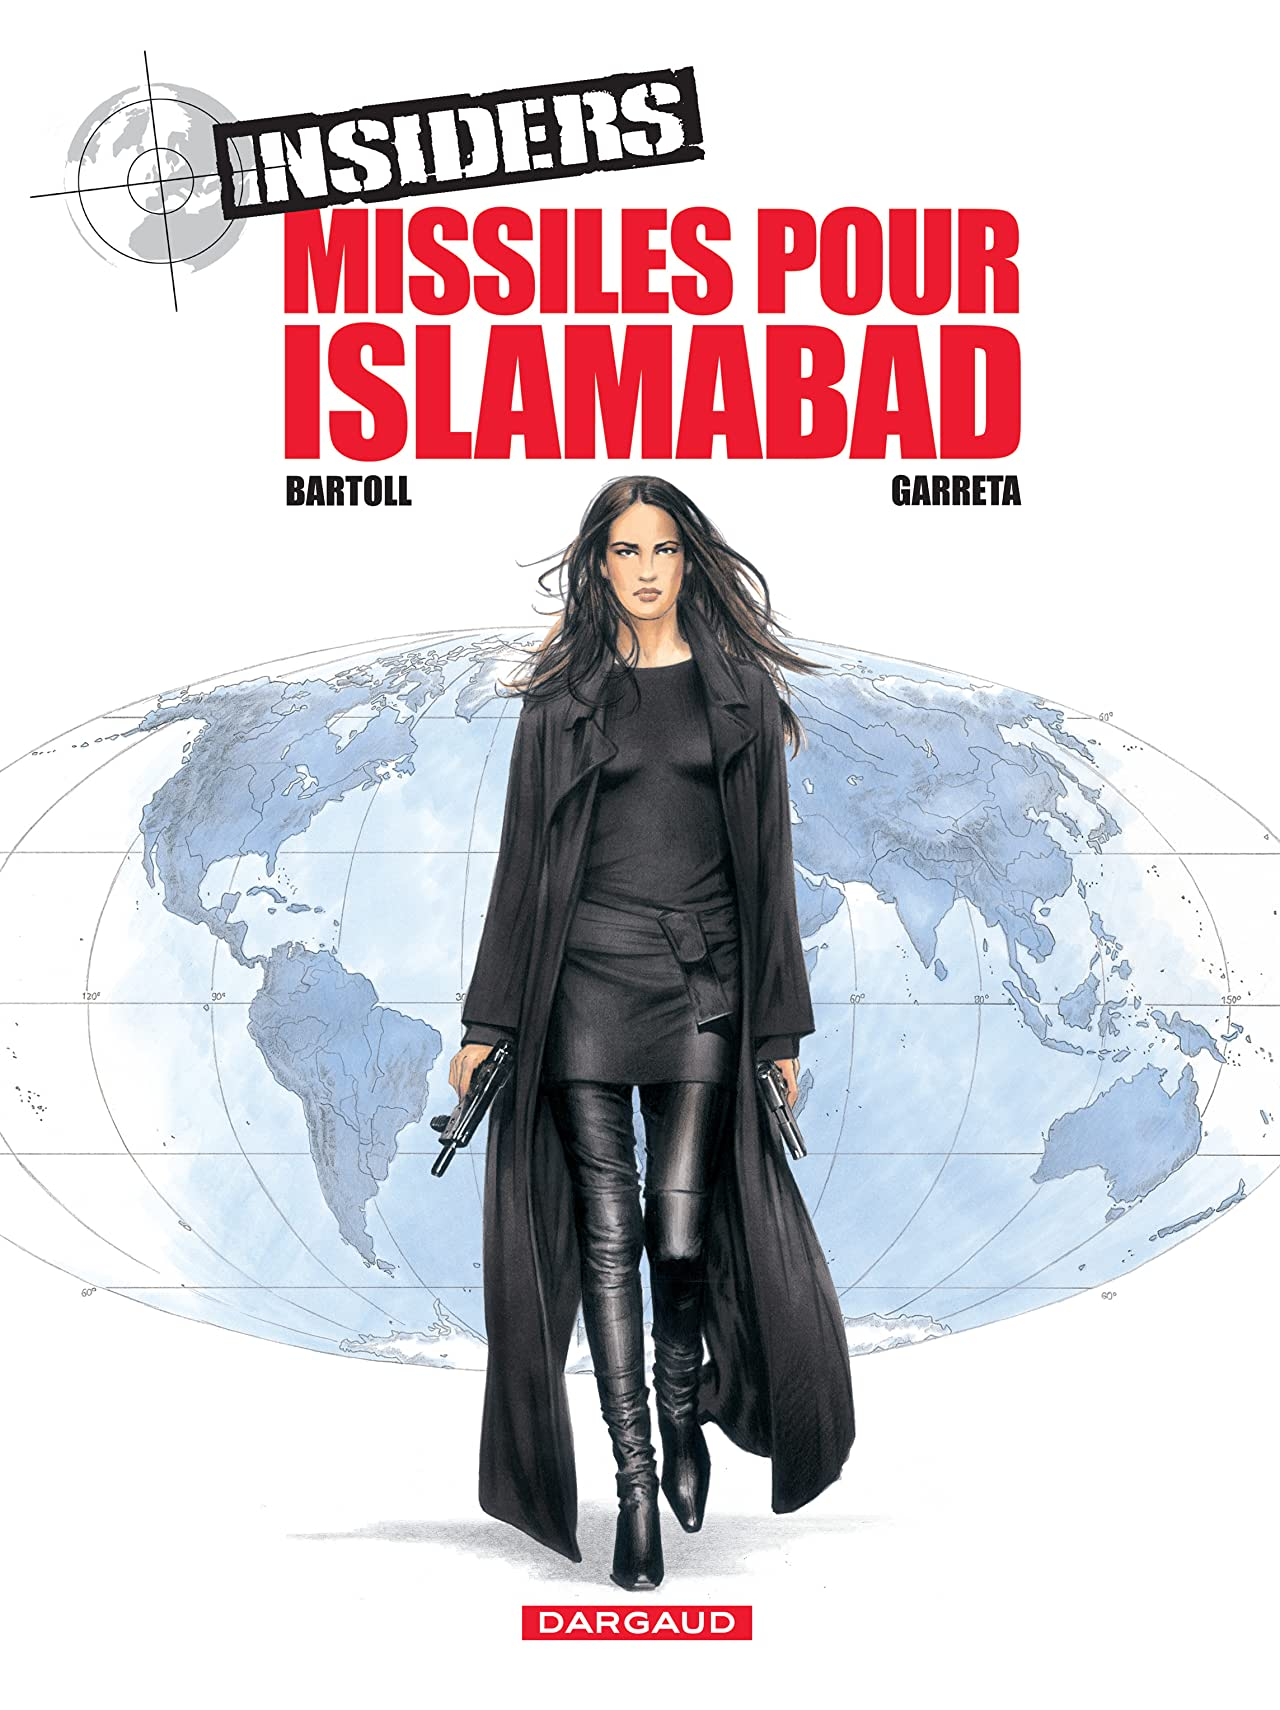 Insiders Vol. 3: Missiles pour Islamabad